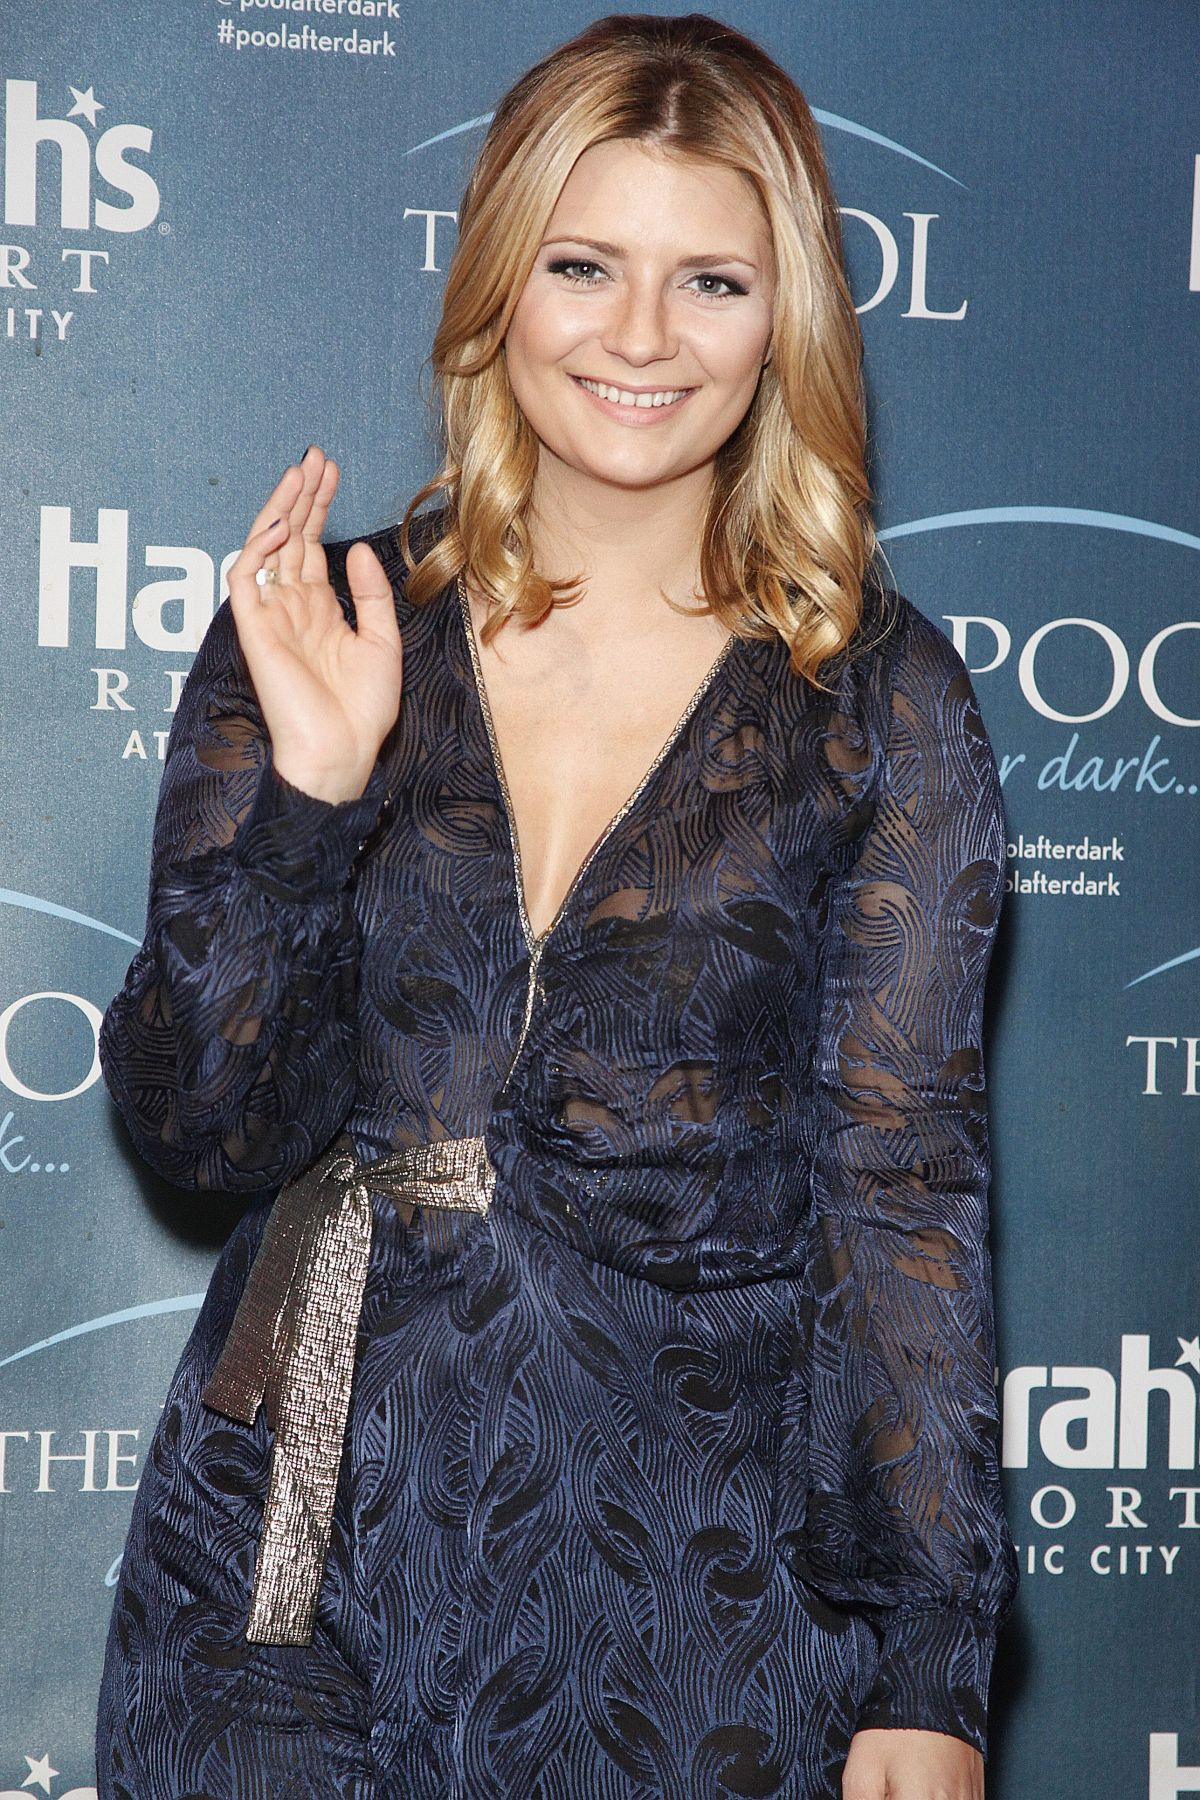 MISCHA BARTON Hosts Pool After Dark at Harrah's Resort in Atlantic City